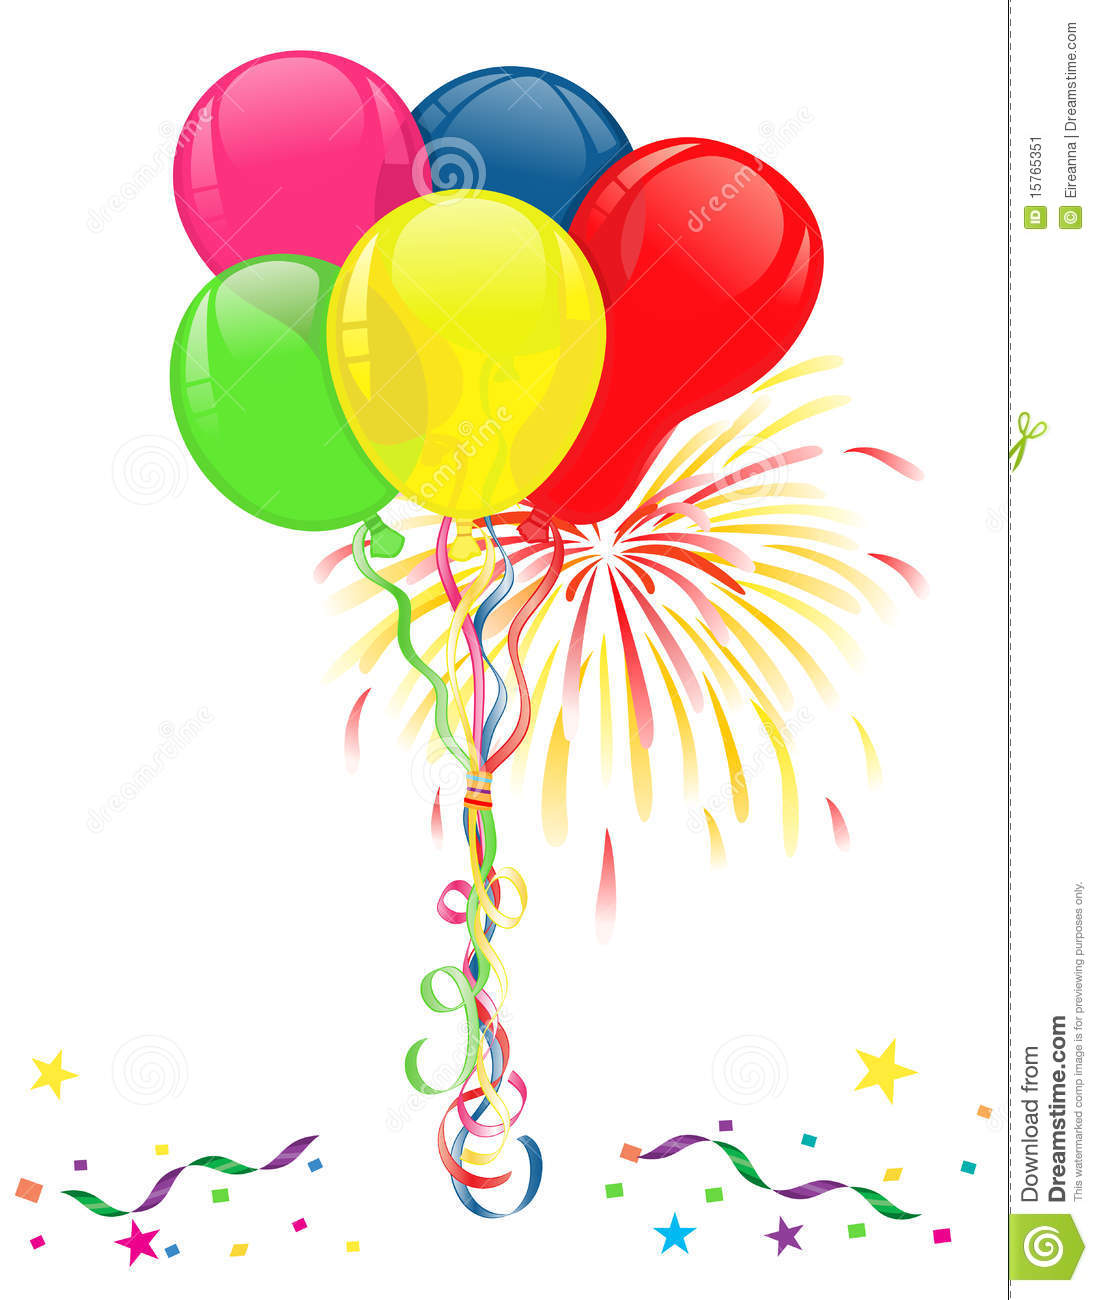 Balloons And Fireworks For Celebrations Stock Image - Image: 15765351